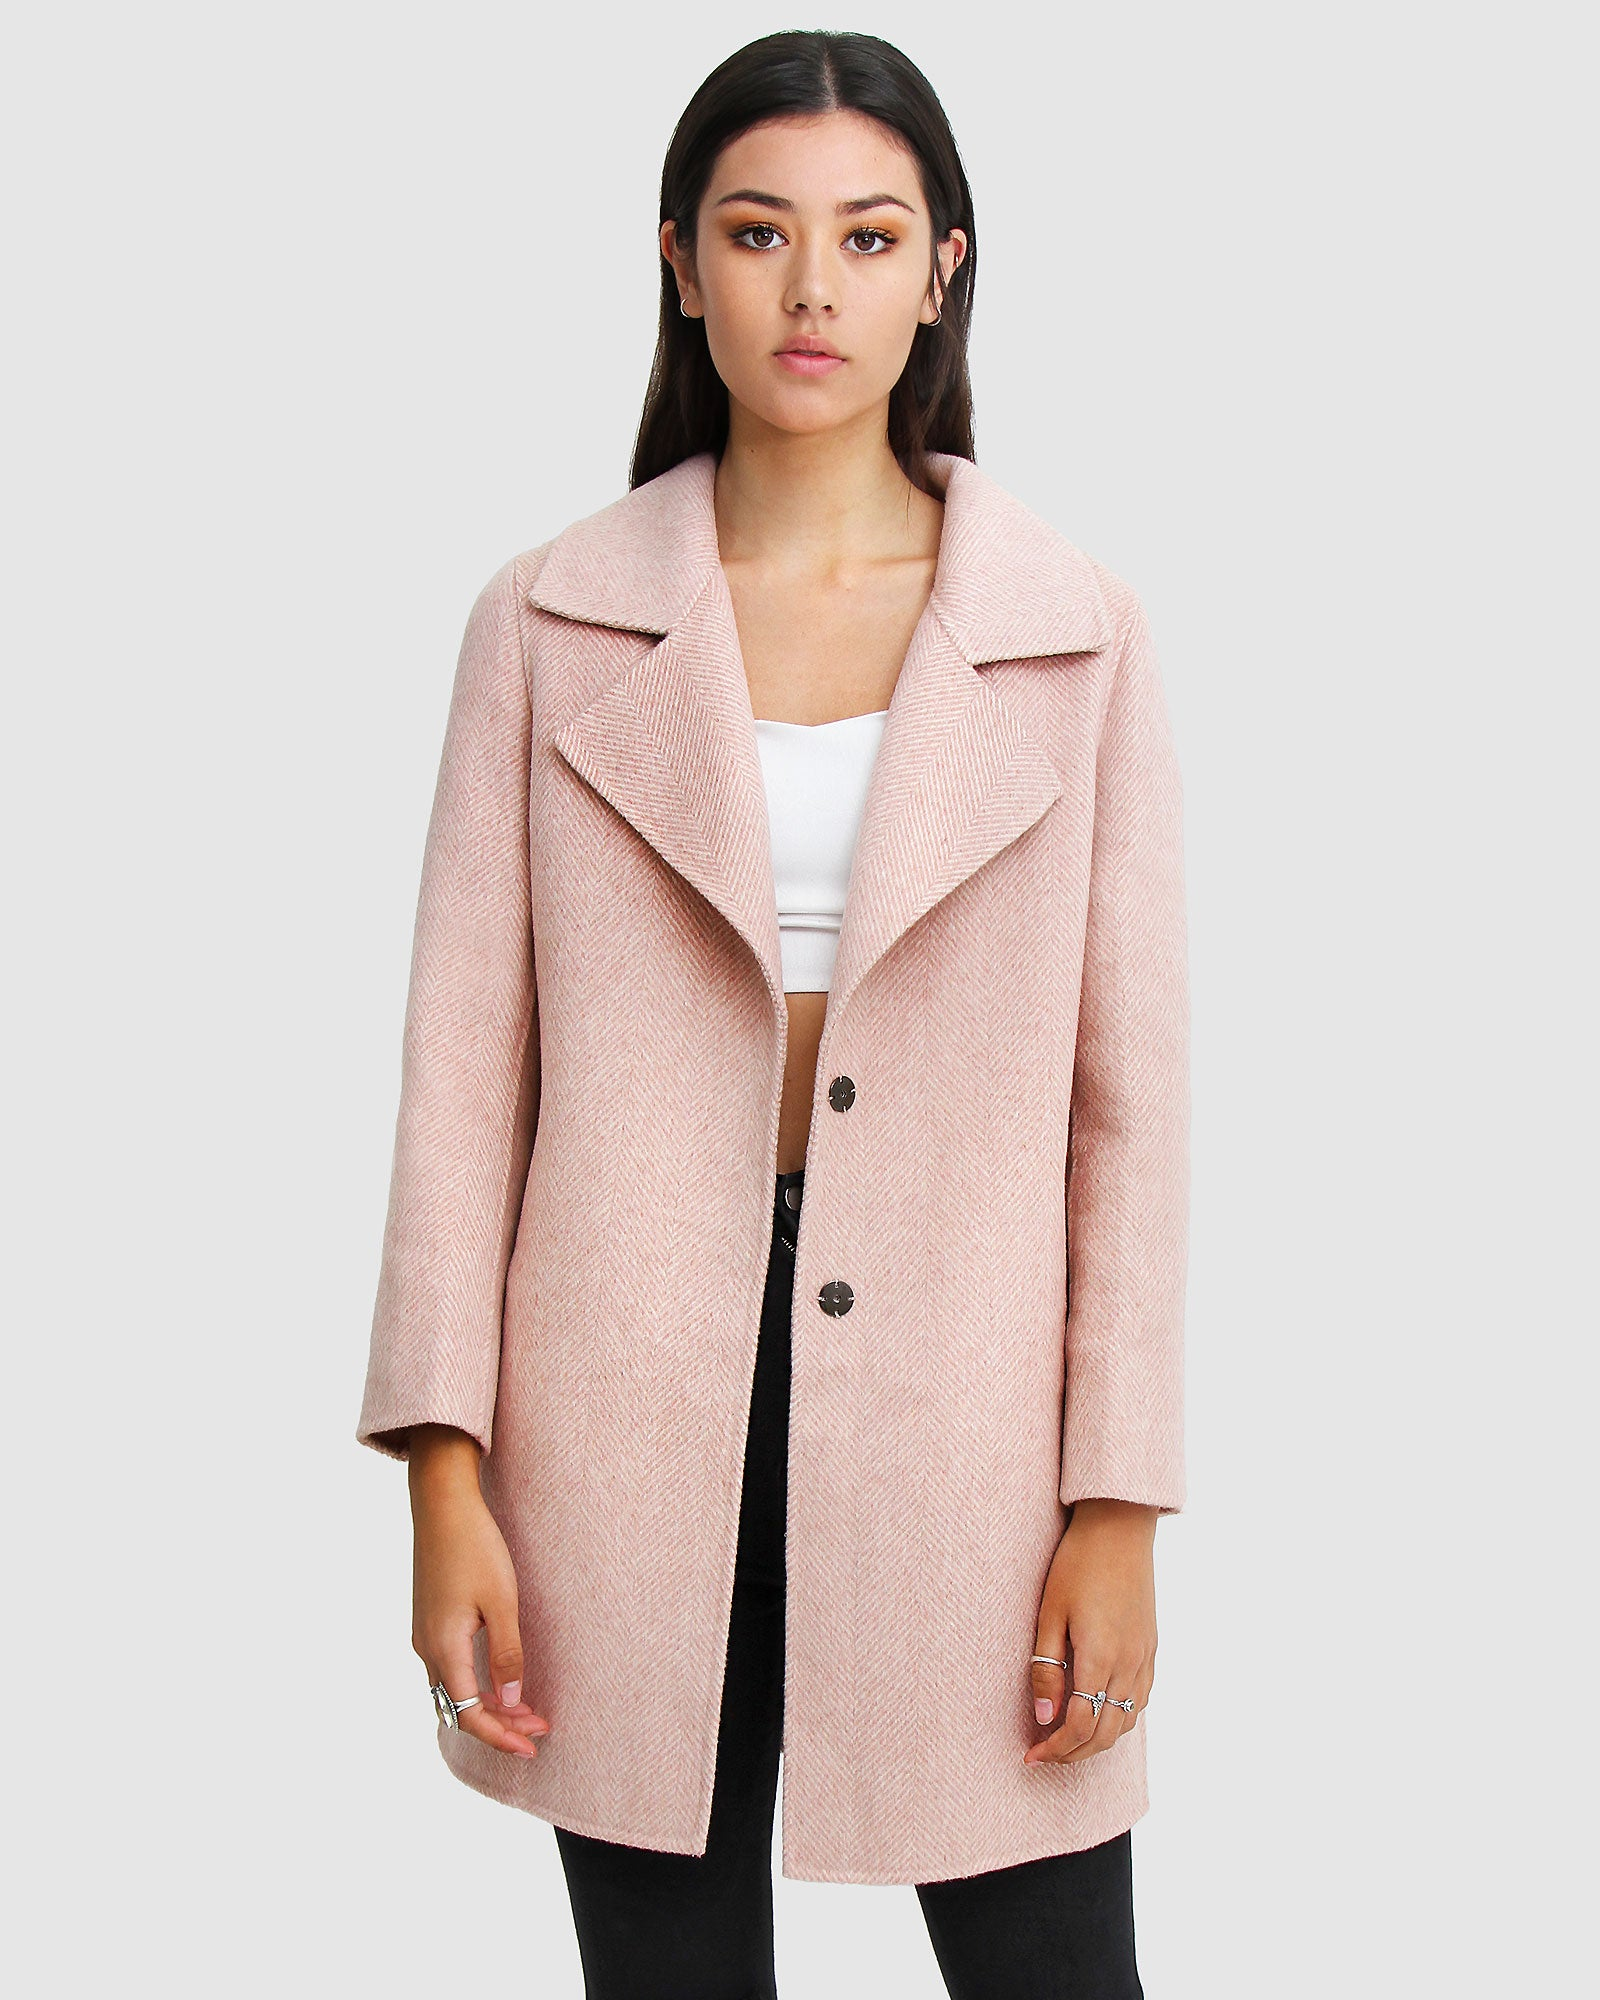 Ex-boyfriend-jacket-blush-front-model.jpg